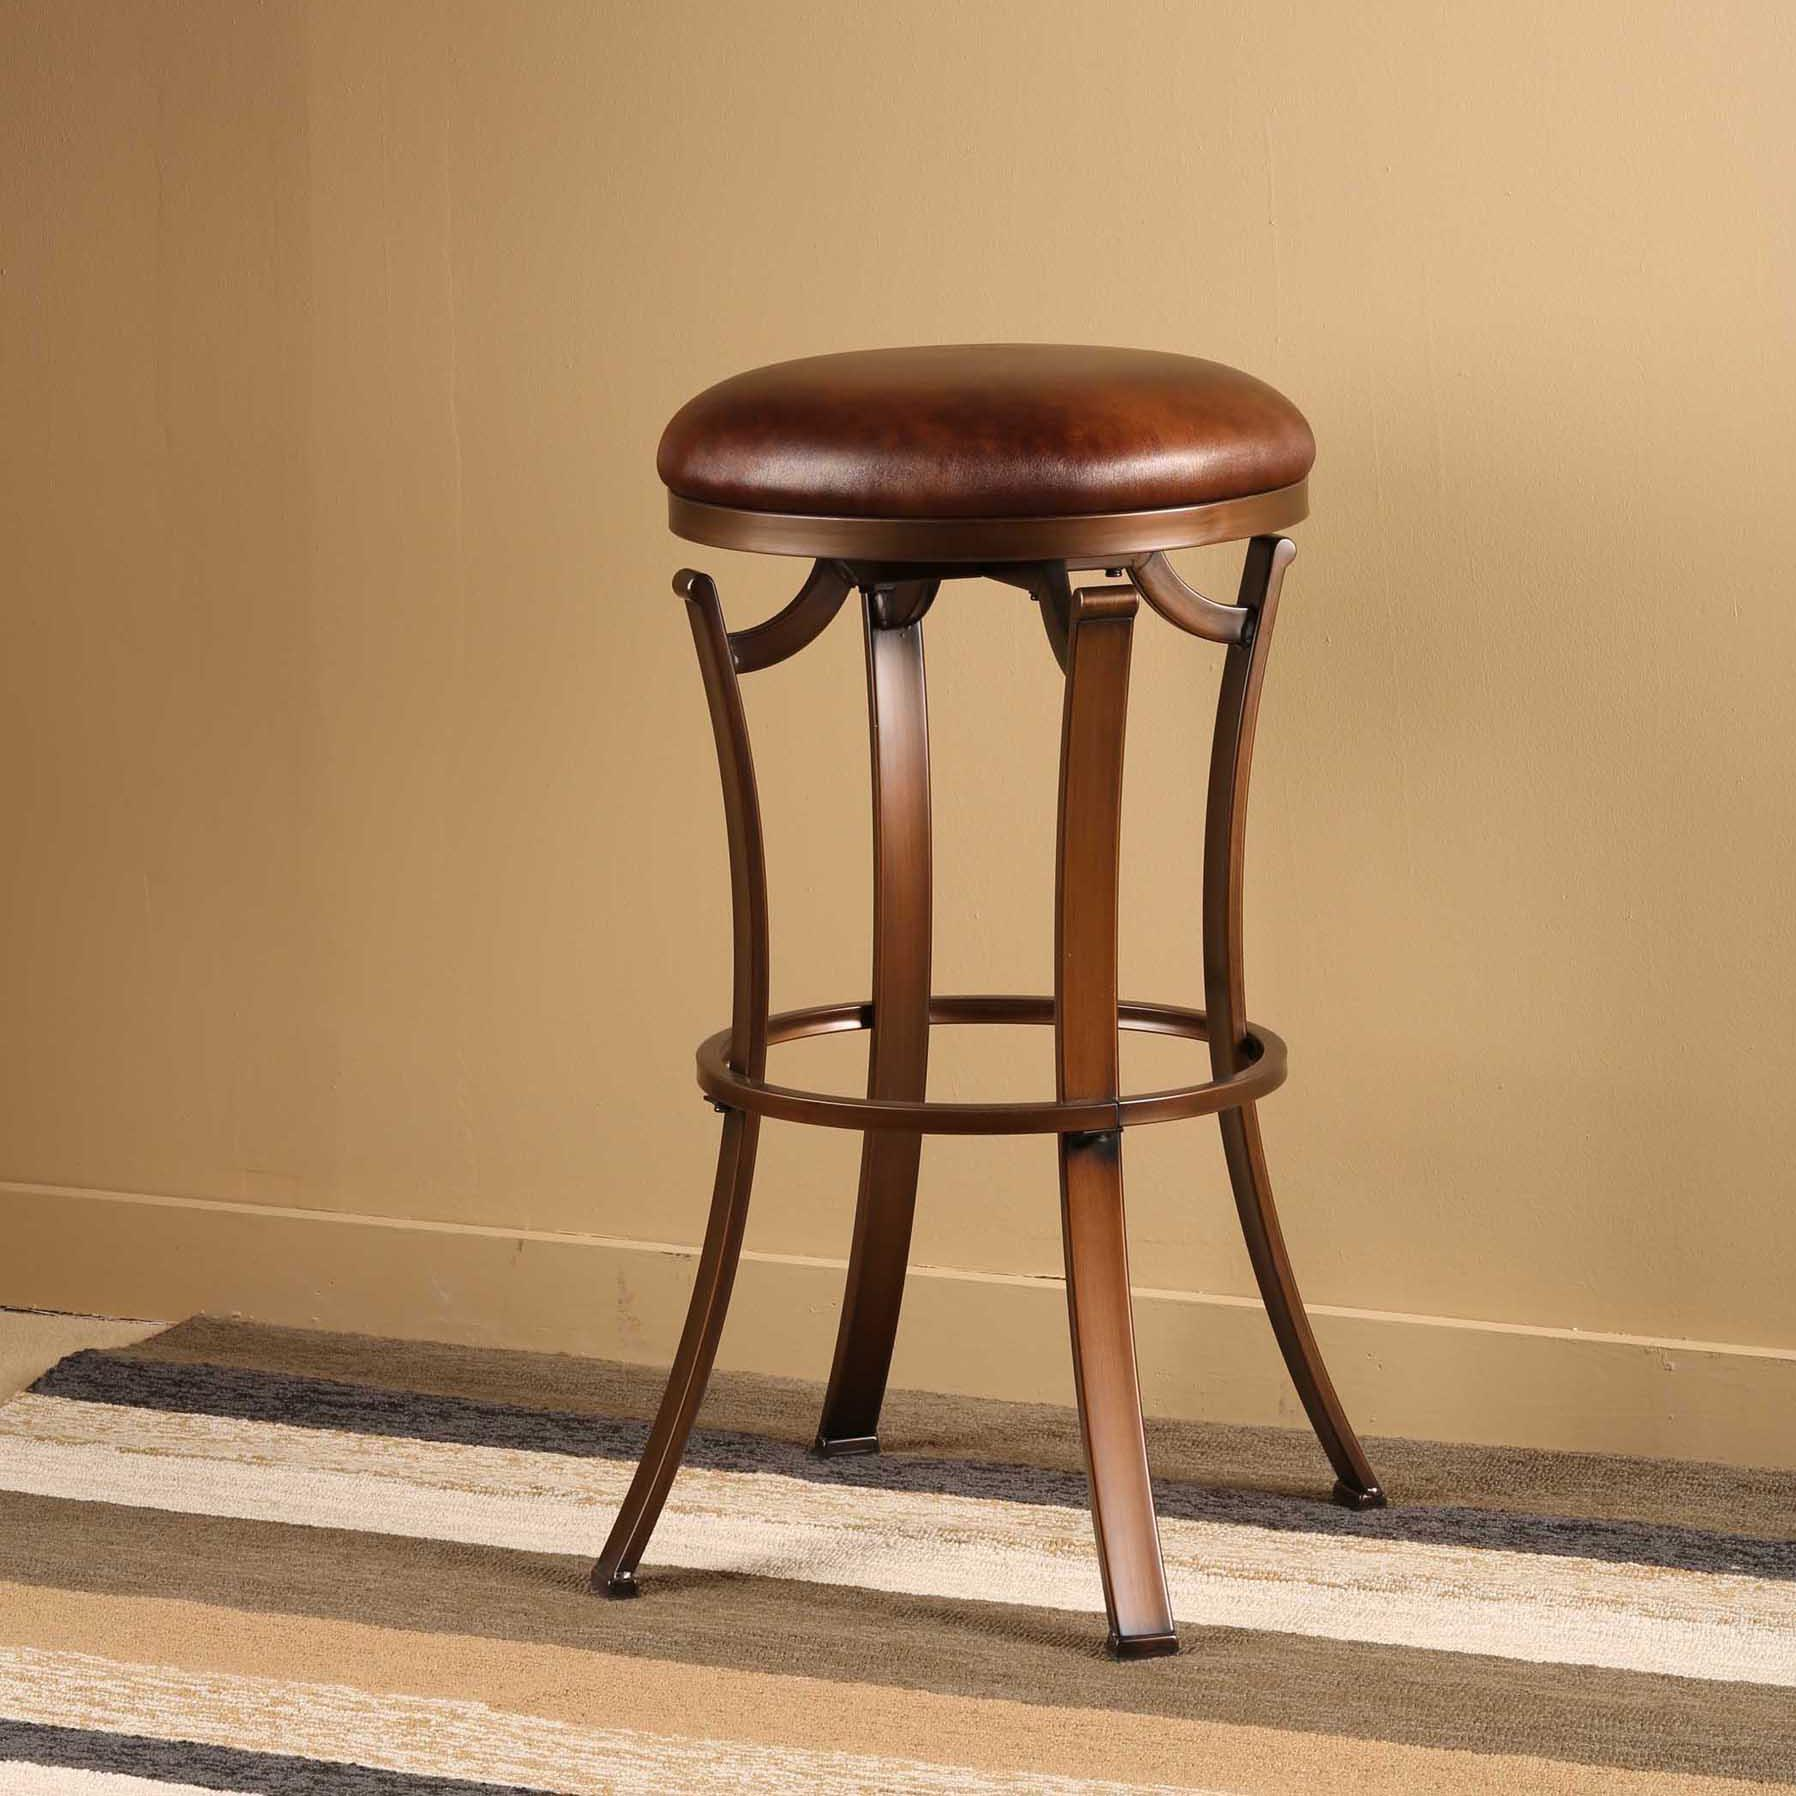 Hillsdale Metal Stools Kelford Backless Swivel Counter Stool - Item Number: 4950-826